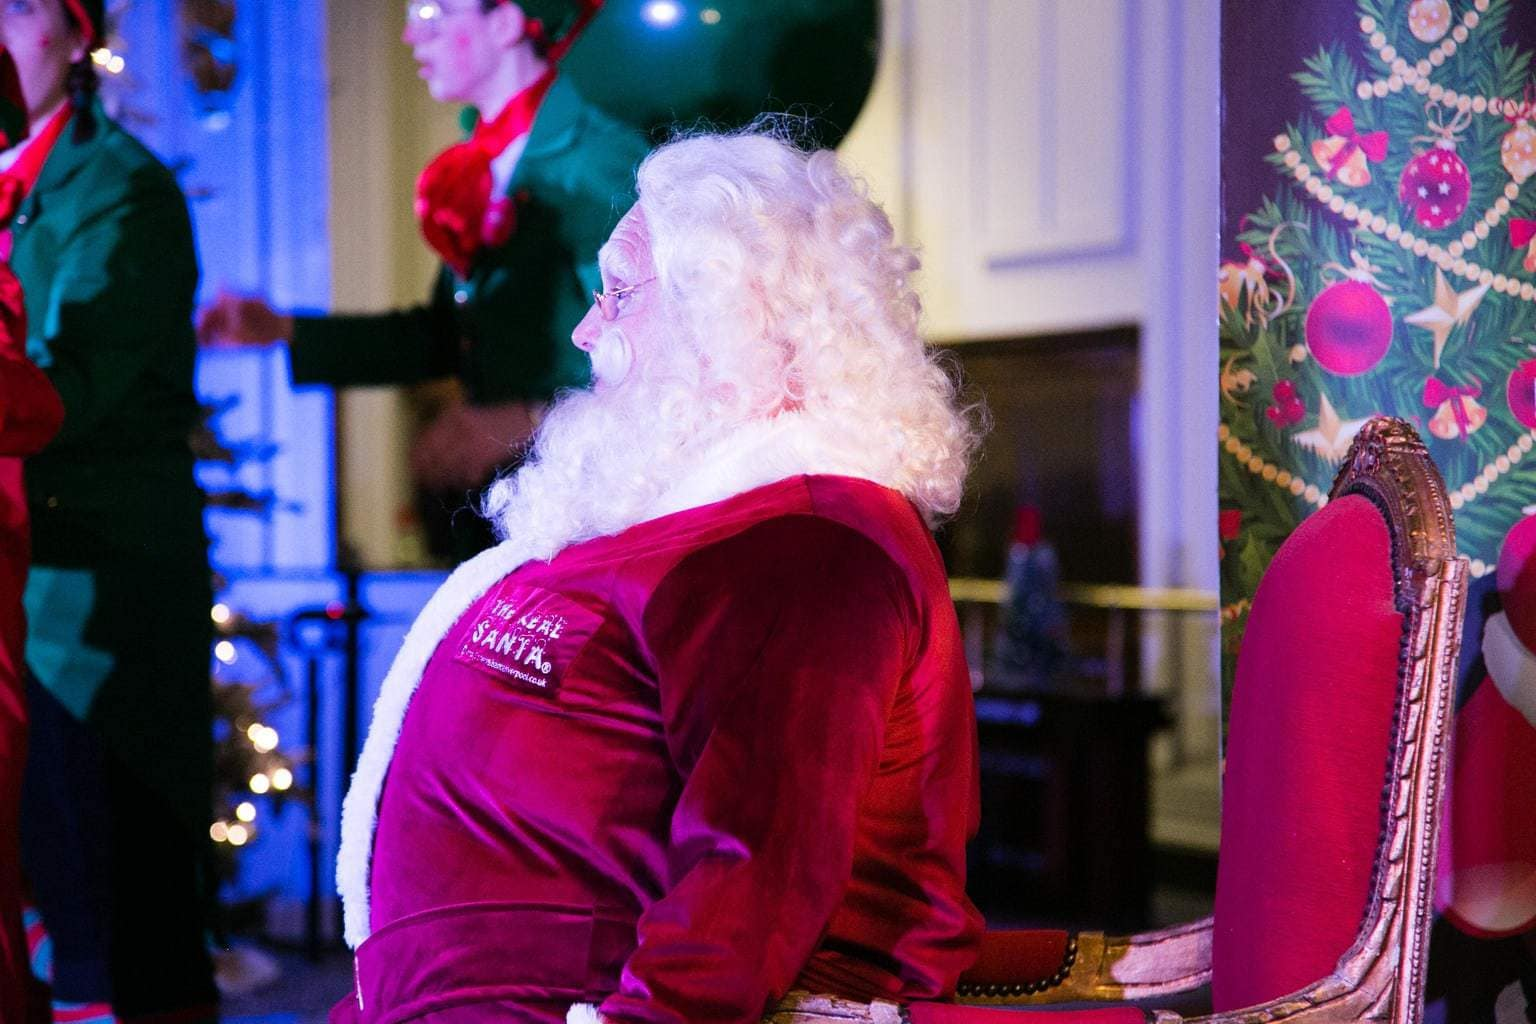 Restaurants Open On Christmas Eve 2019.Top 5 Places To Visit Santa In County Durham Christmas 2019